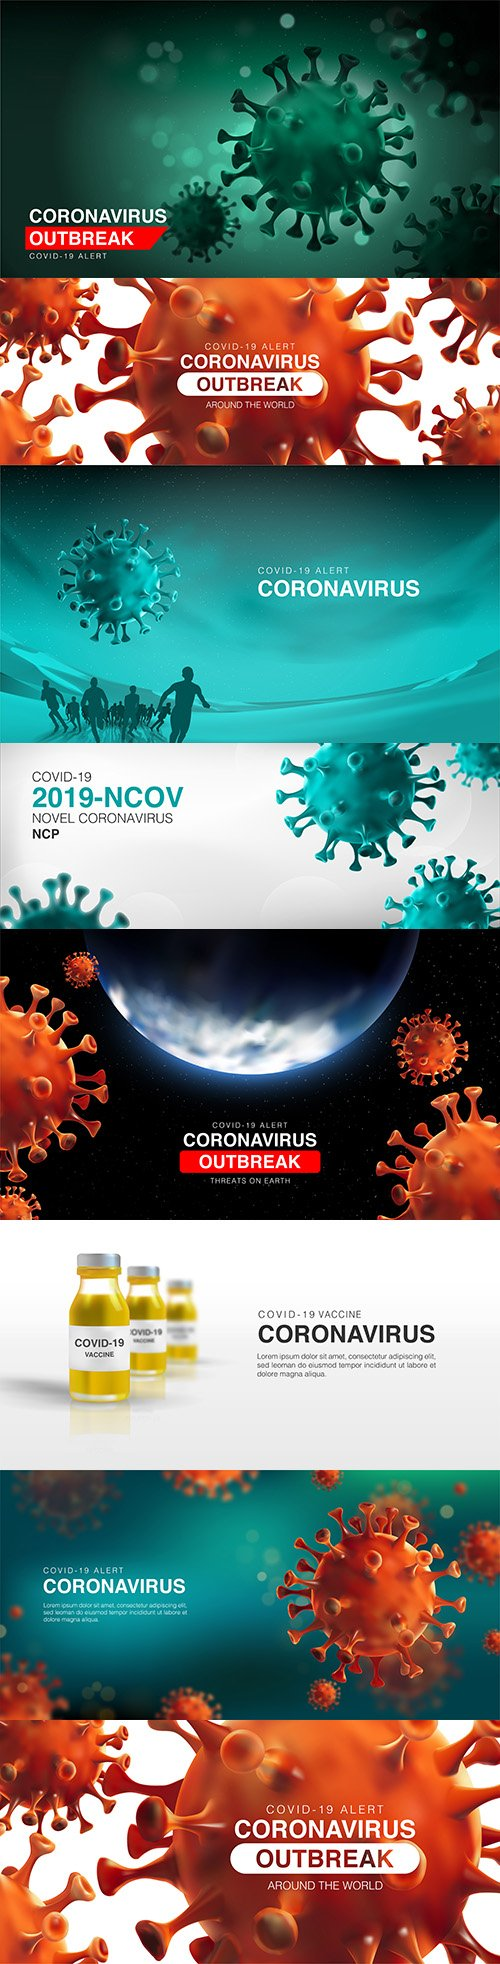 Realistic 3d illustrations vaccine for cell coroniviruses